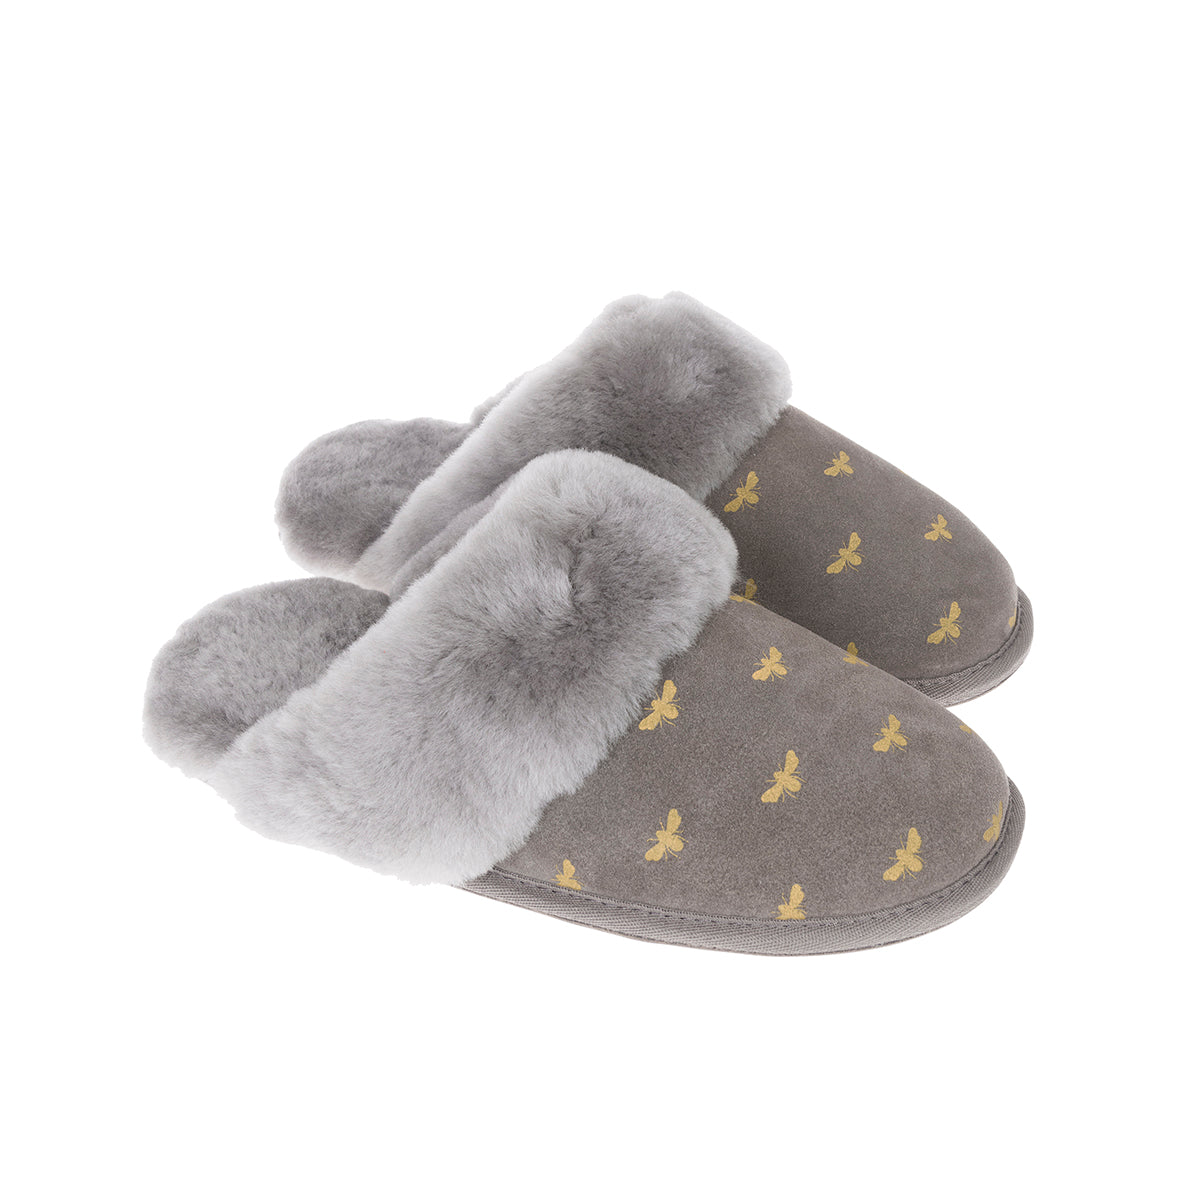 Bees Slippers